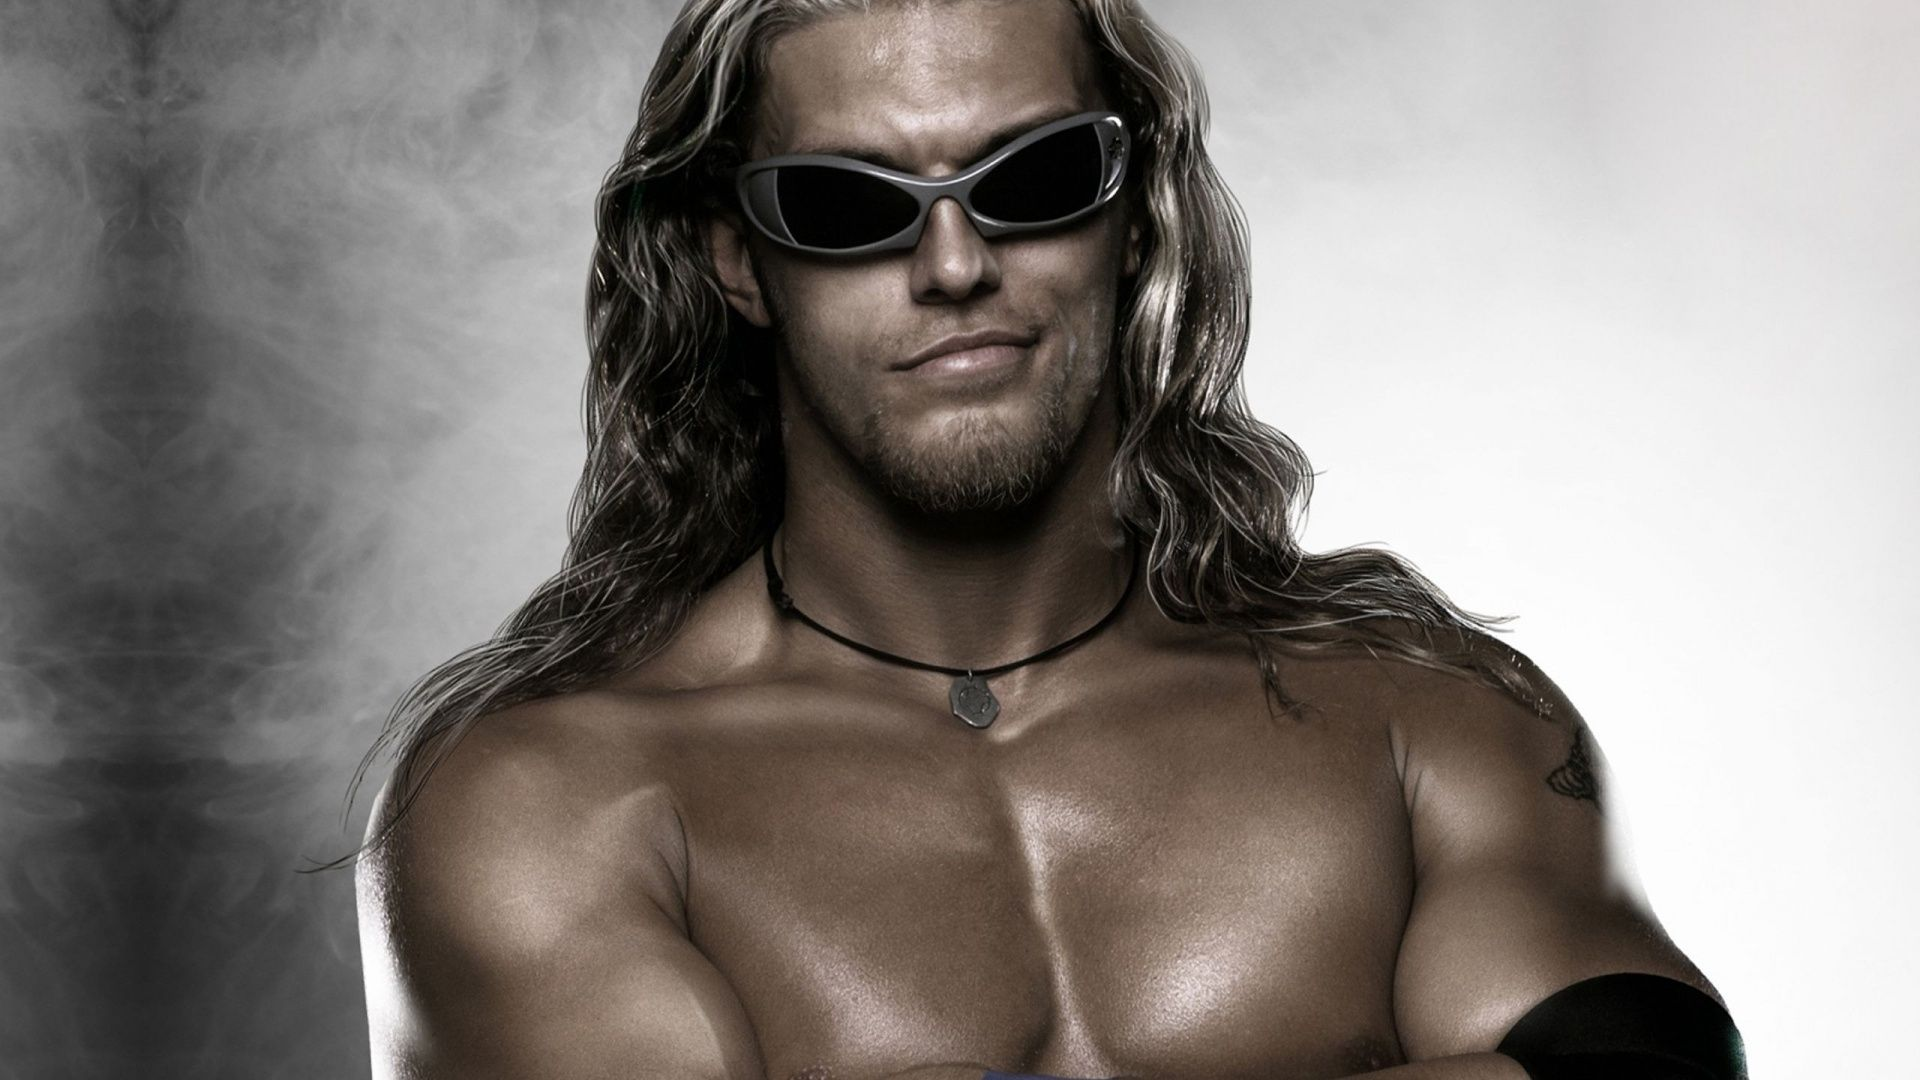 Wwe Picture